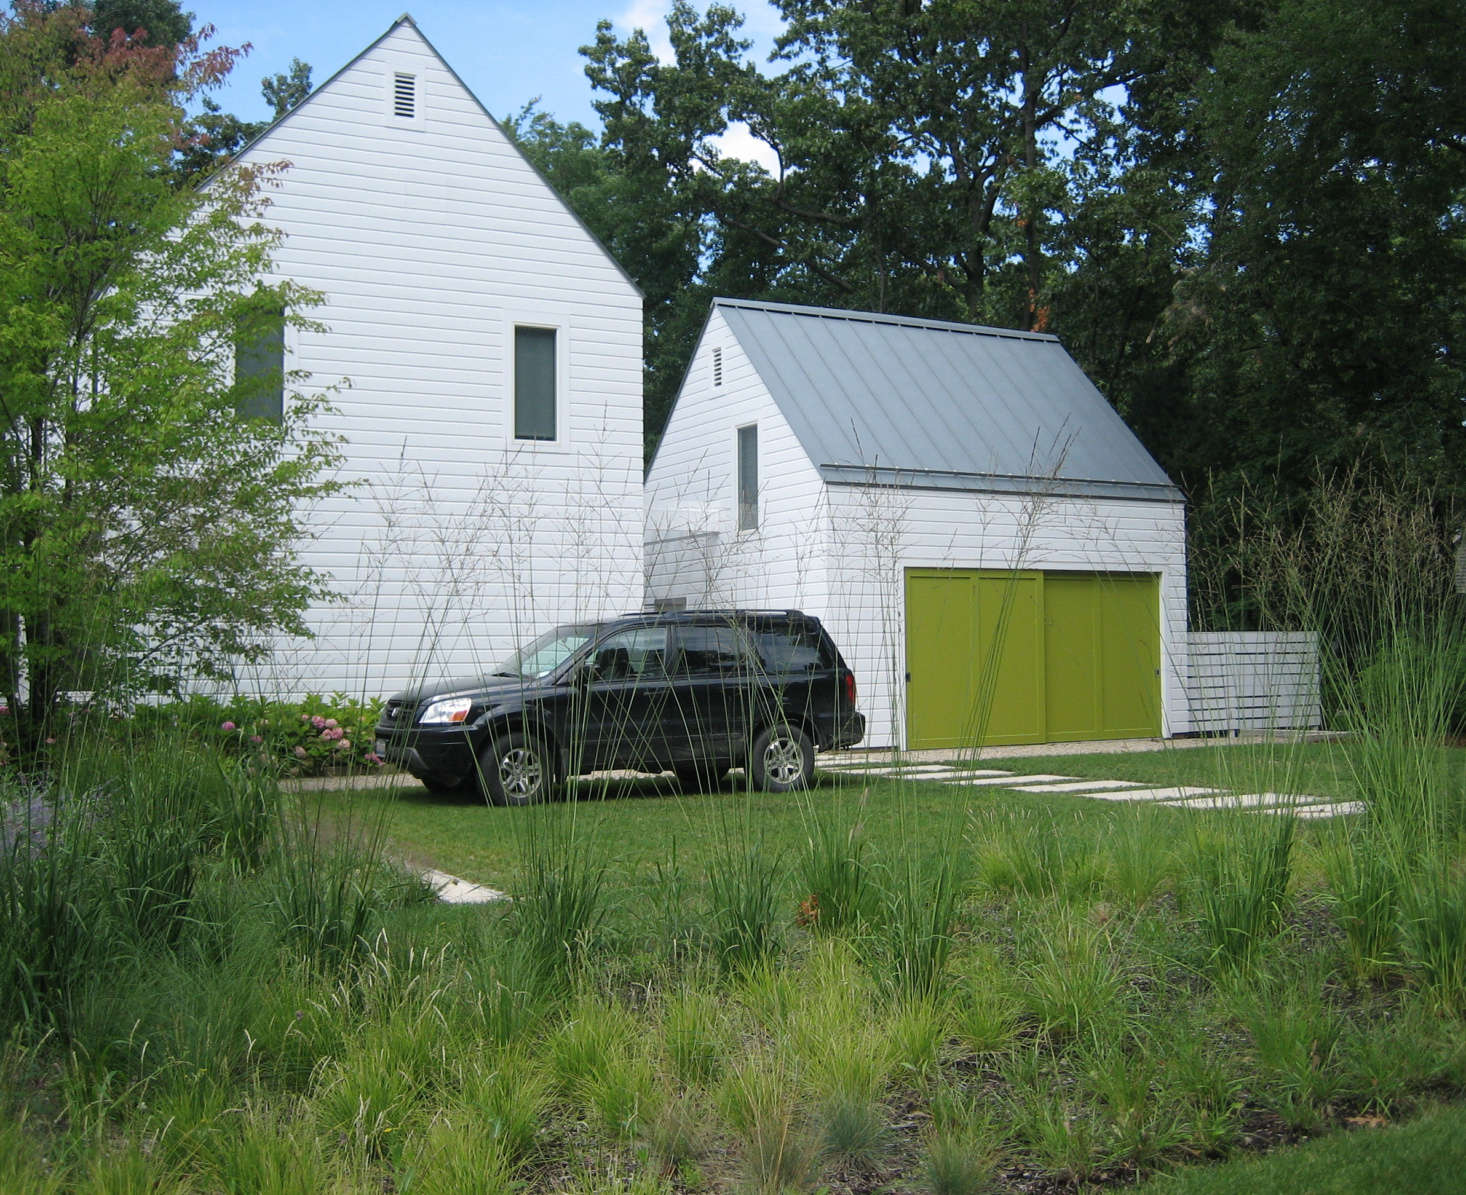 For more on this driveway with grass block pavers, see Landscape Architect Visit: A Classic Lake Michigan Summer House by Kettelkamp & Kettelkamp. Photograph courtesy of Kettelkamp & Kettelkamp.